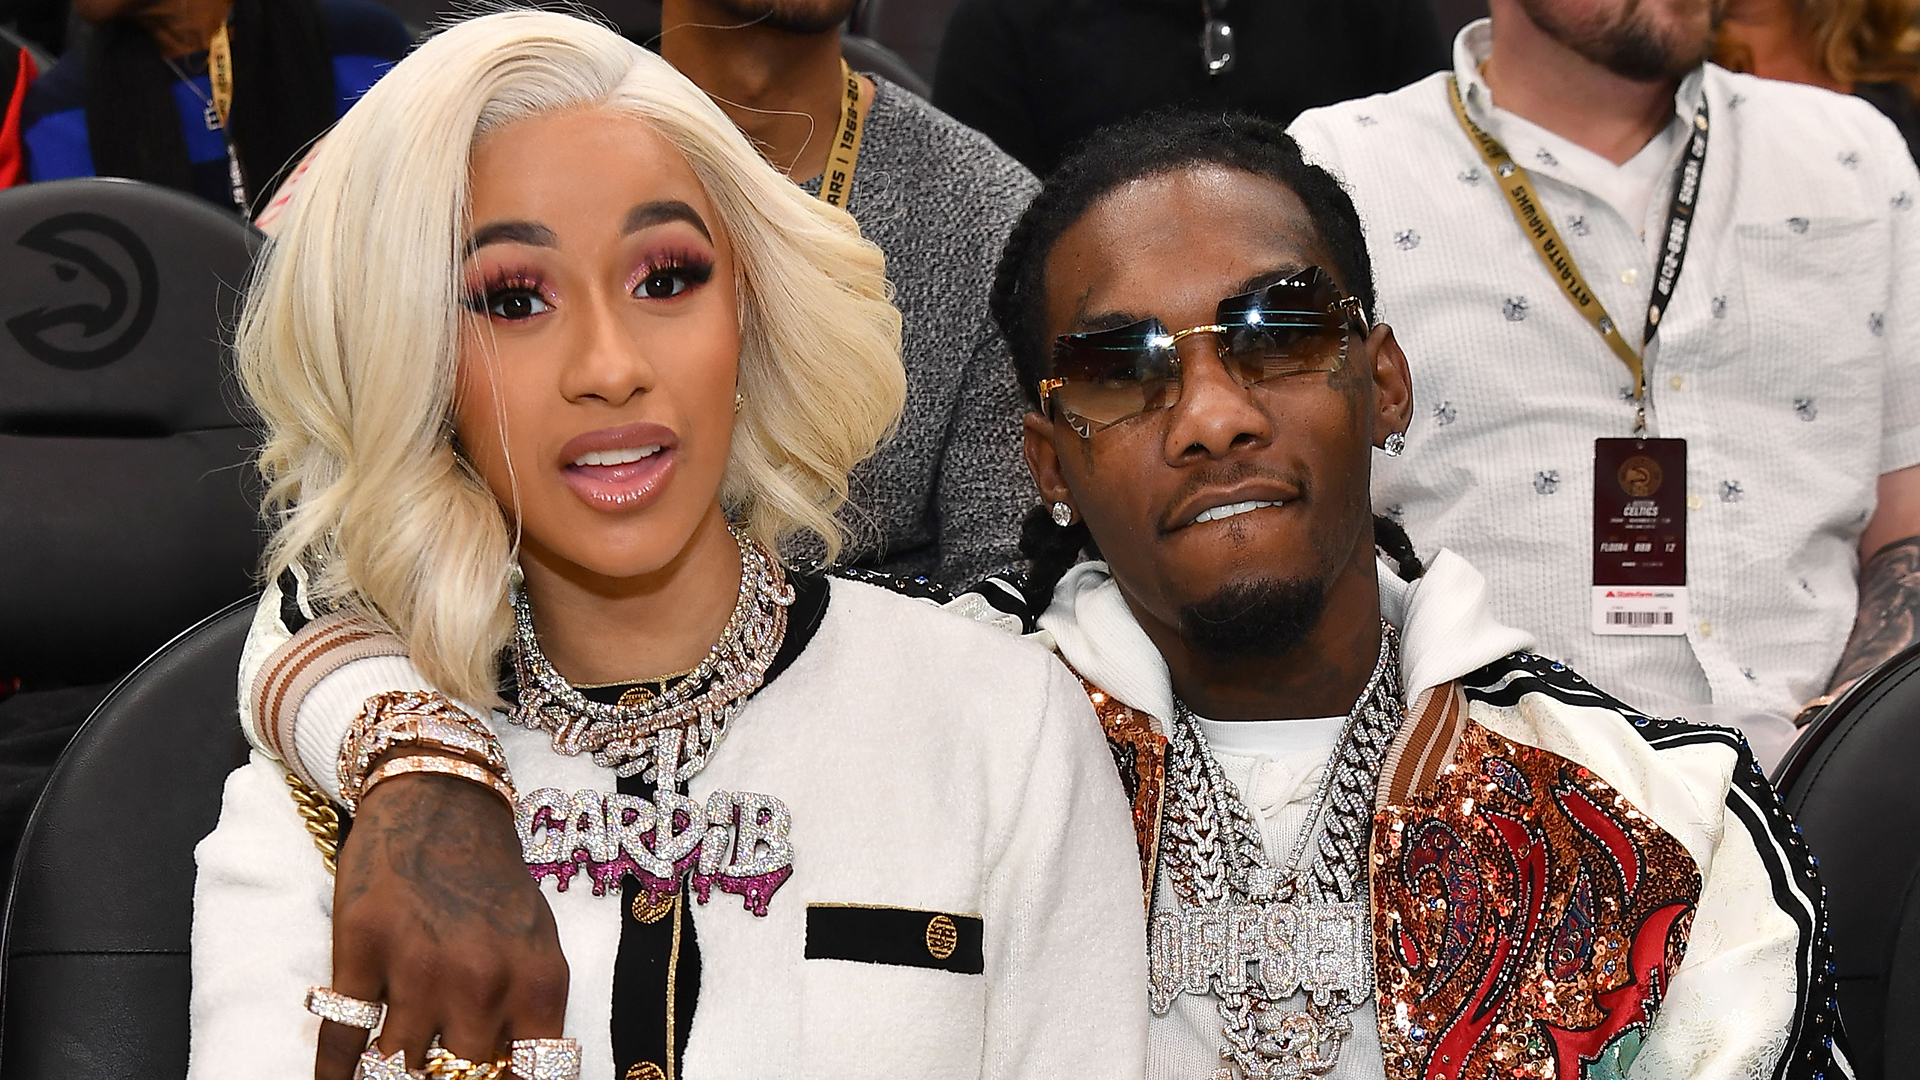 Cardi B Offset Back Together After Breakup Cardi B Offset 1920x1080